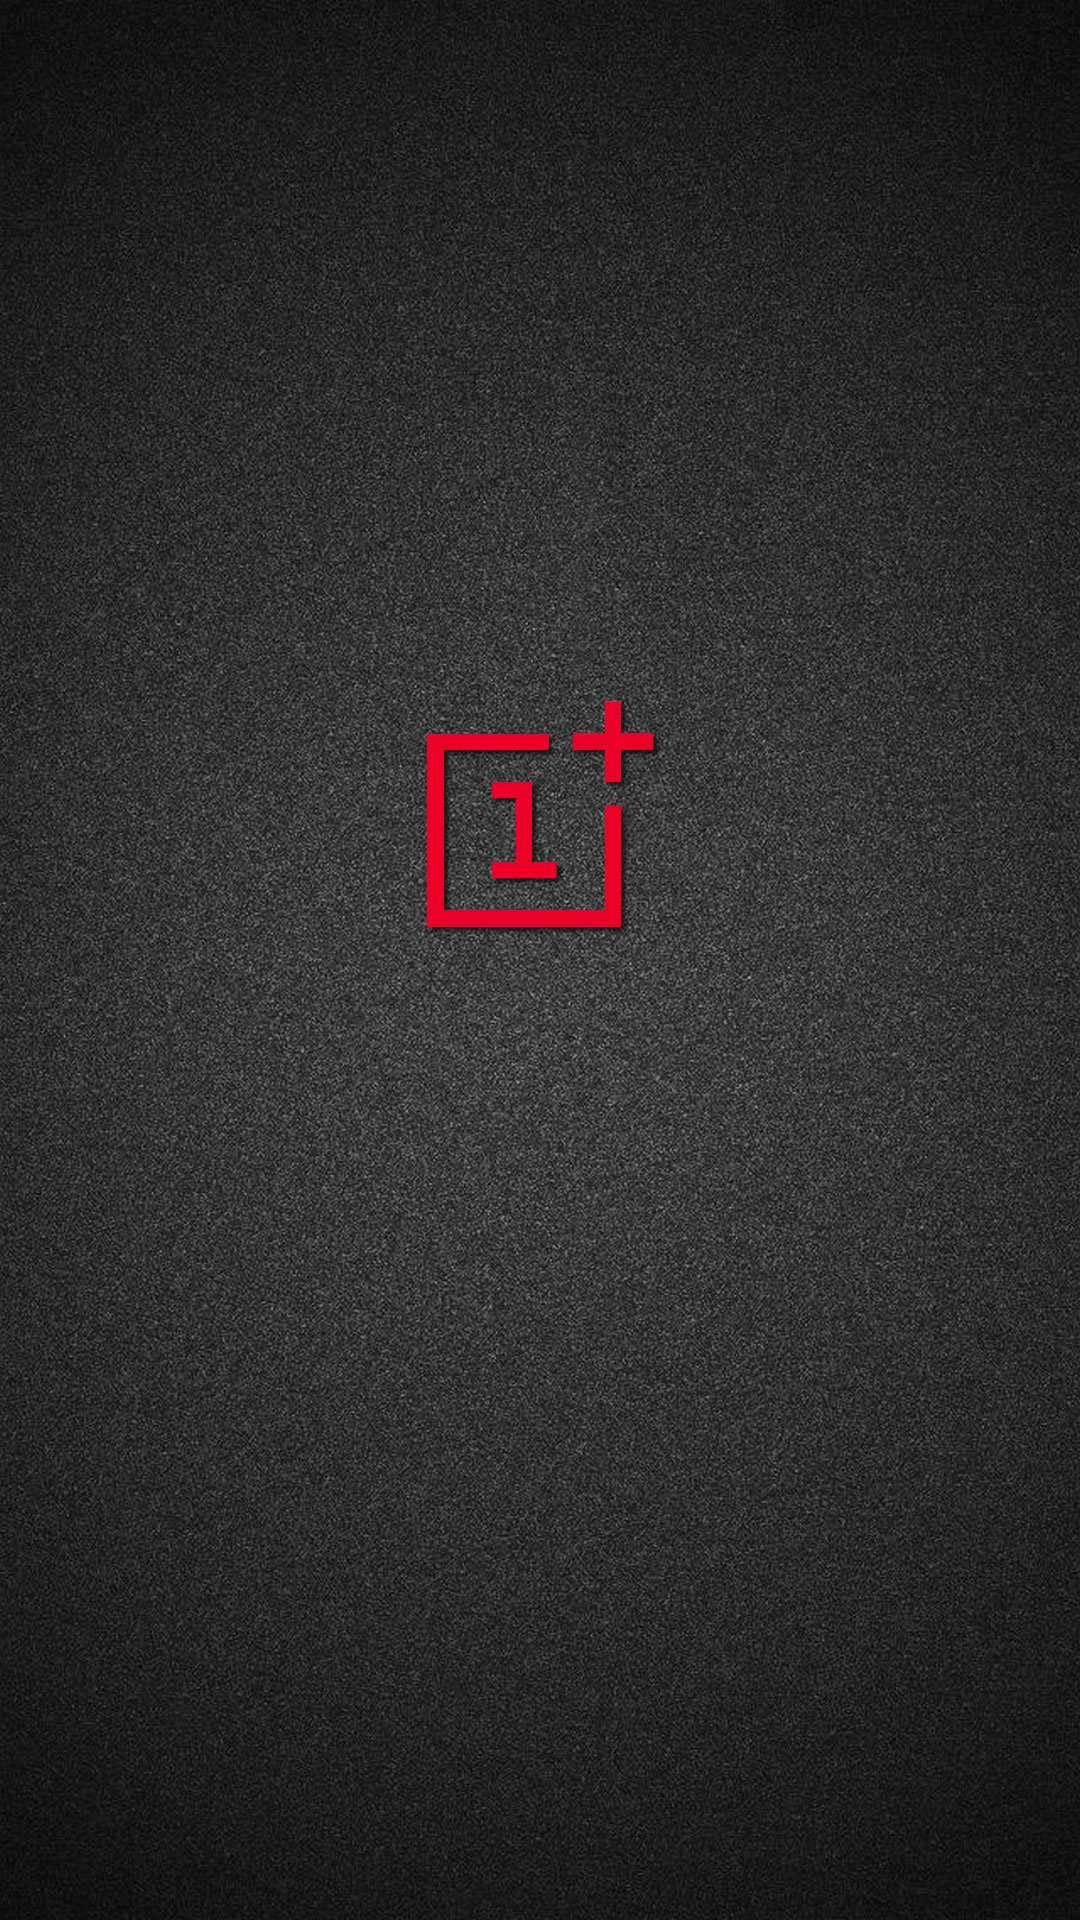 Wallpapers Page 2   OnePlus Forums 1080x1920